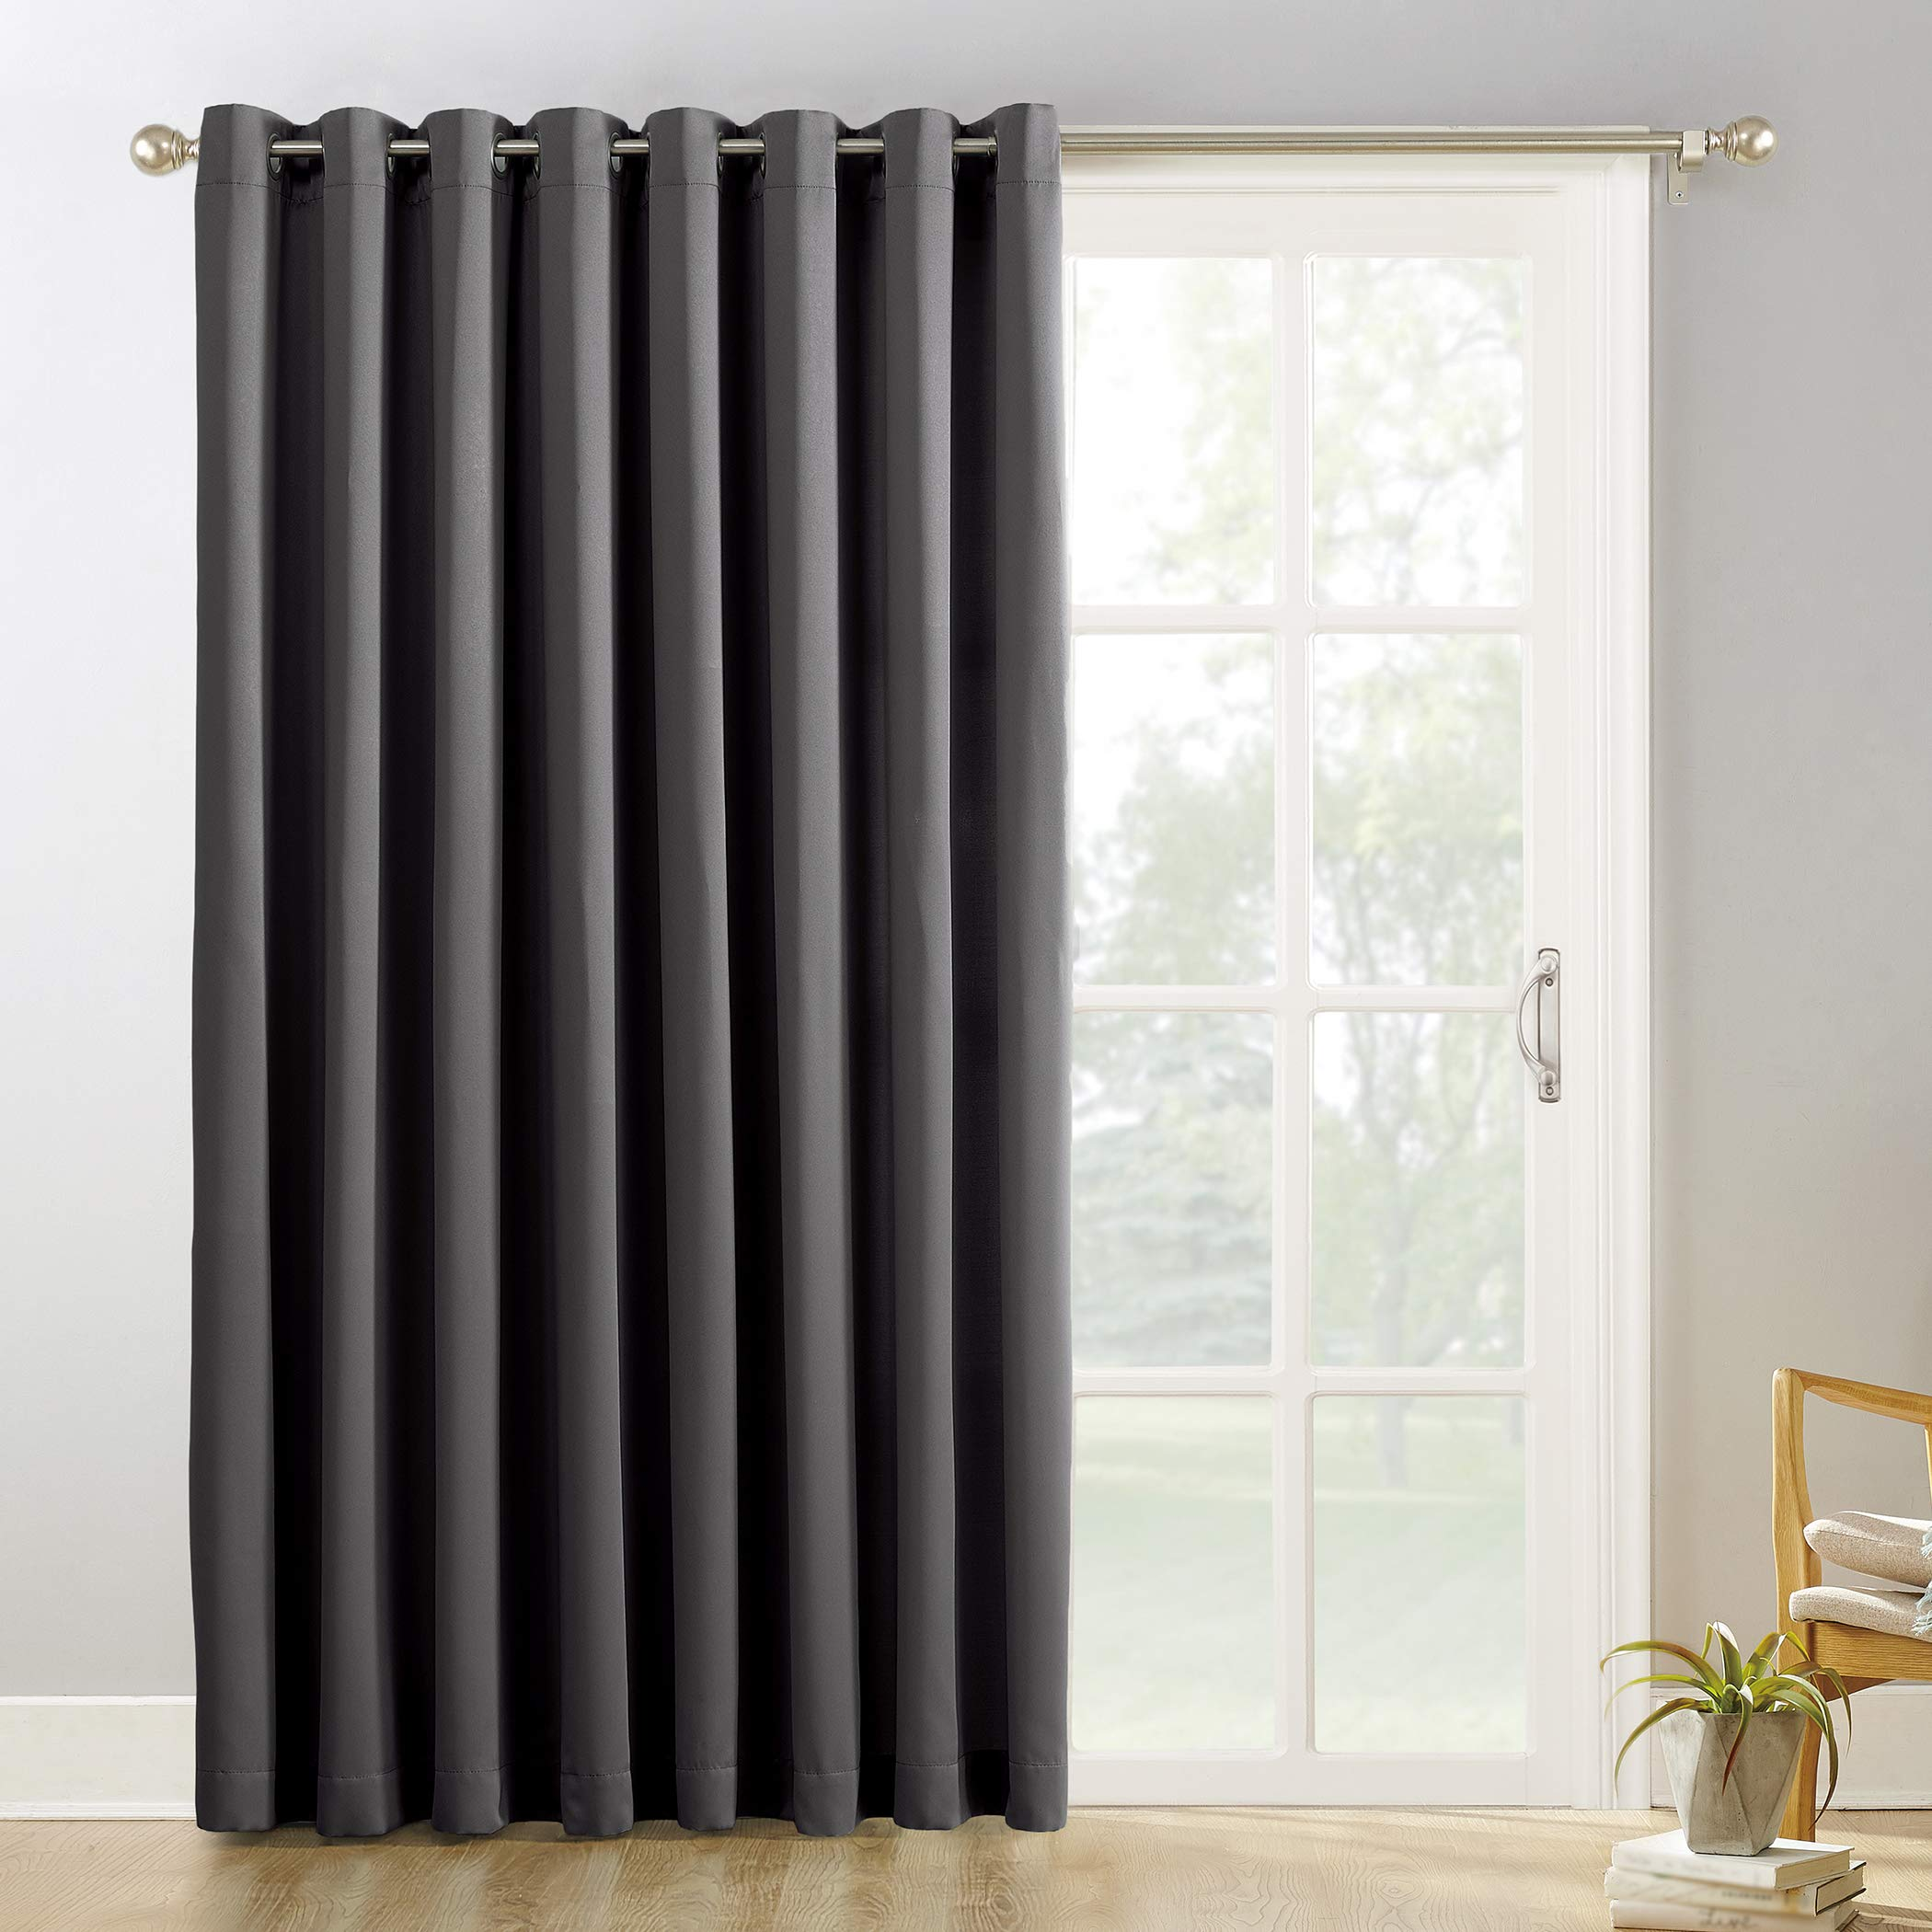 Sun Zero Easton Extra-Wide Blackout Sliding Patio Door Curtain Panel with Pull Wand, 100'' x 84'', Charcoal Gray by Sun Zero